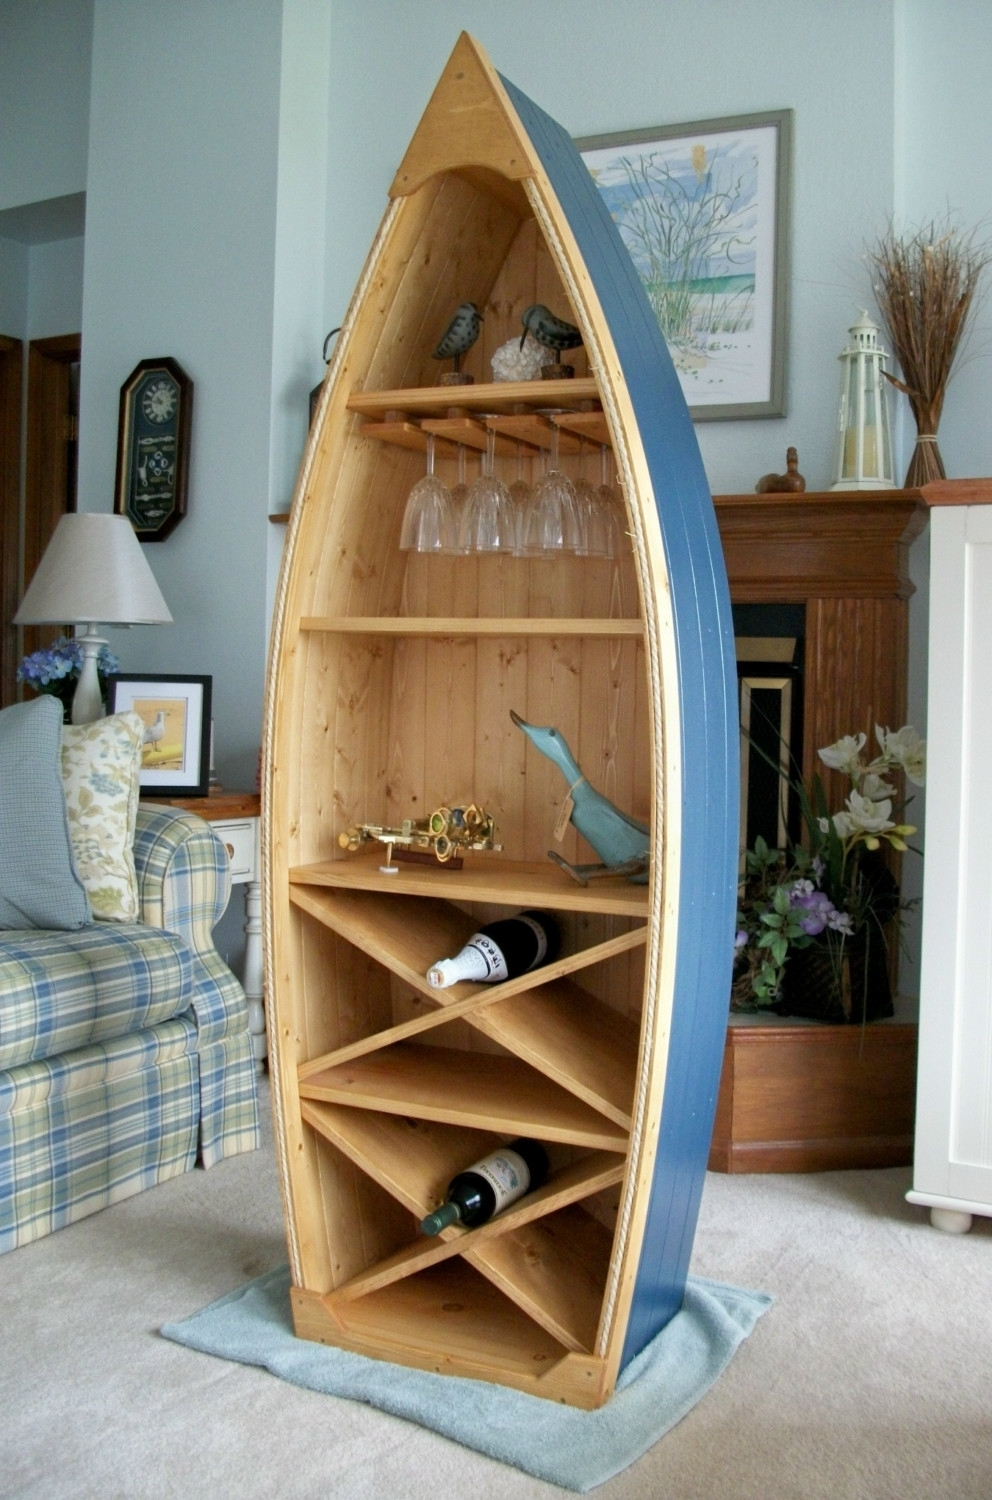 Well Known Boat Bookcase Image : Doherty House – How To Build Boat Bookcase Intended For Boat Bookcases (View 13 of 15)